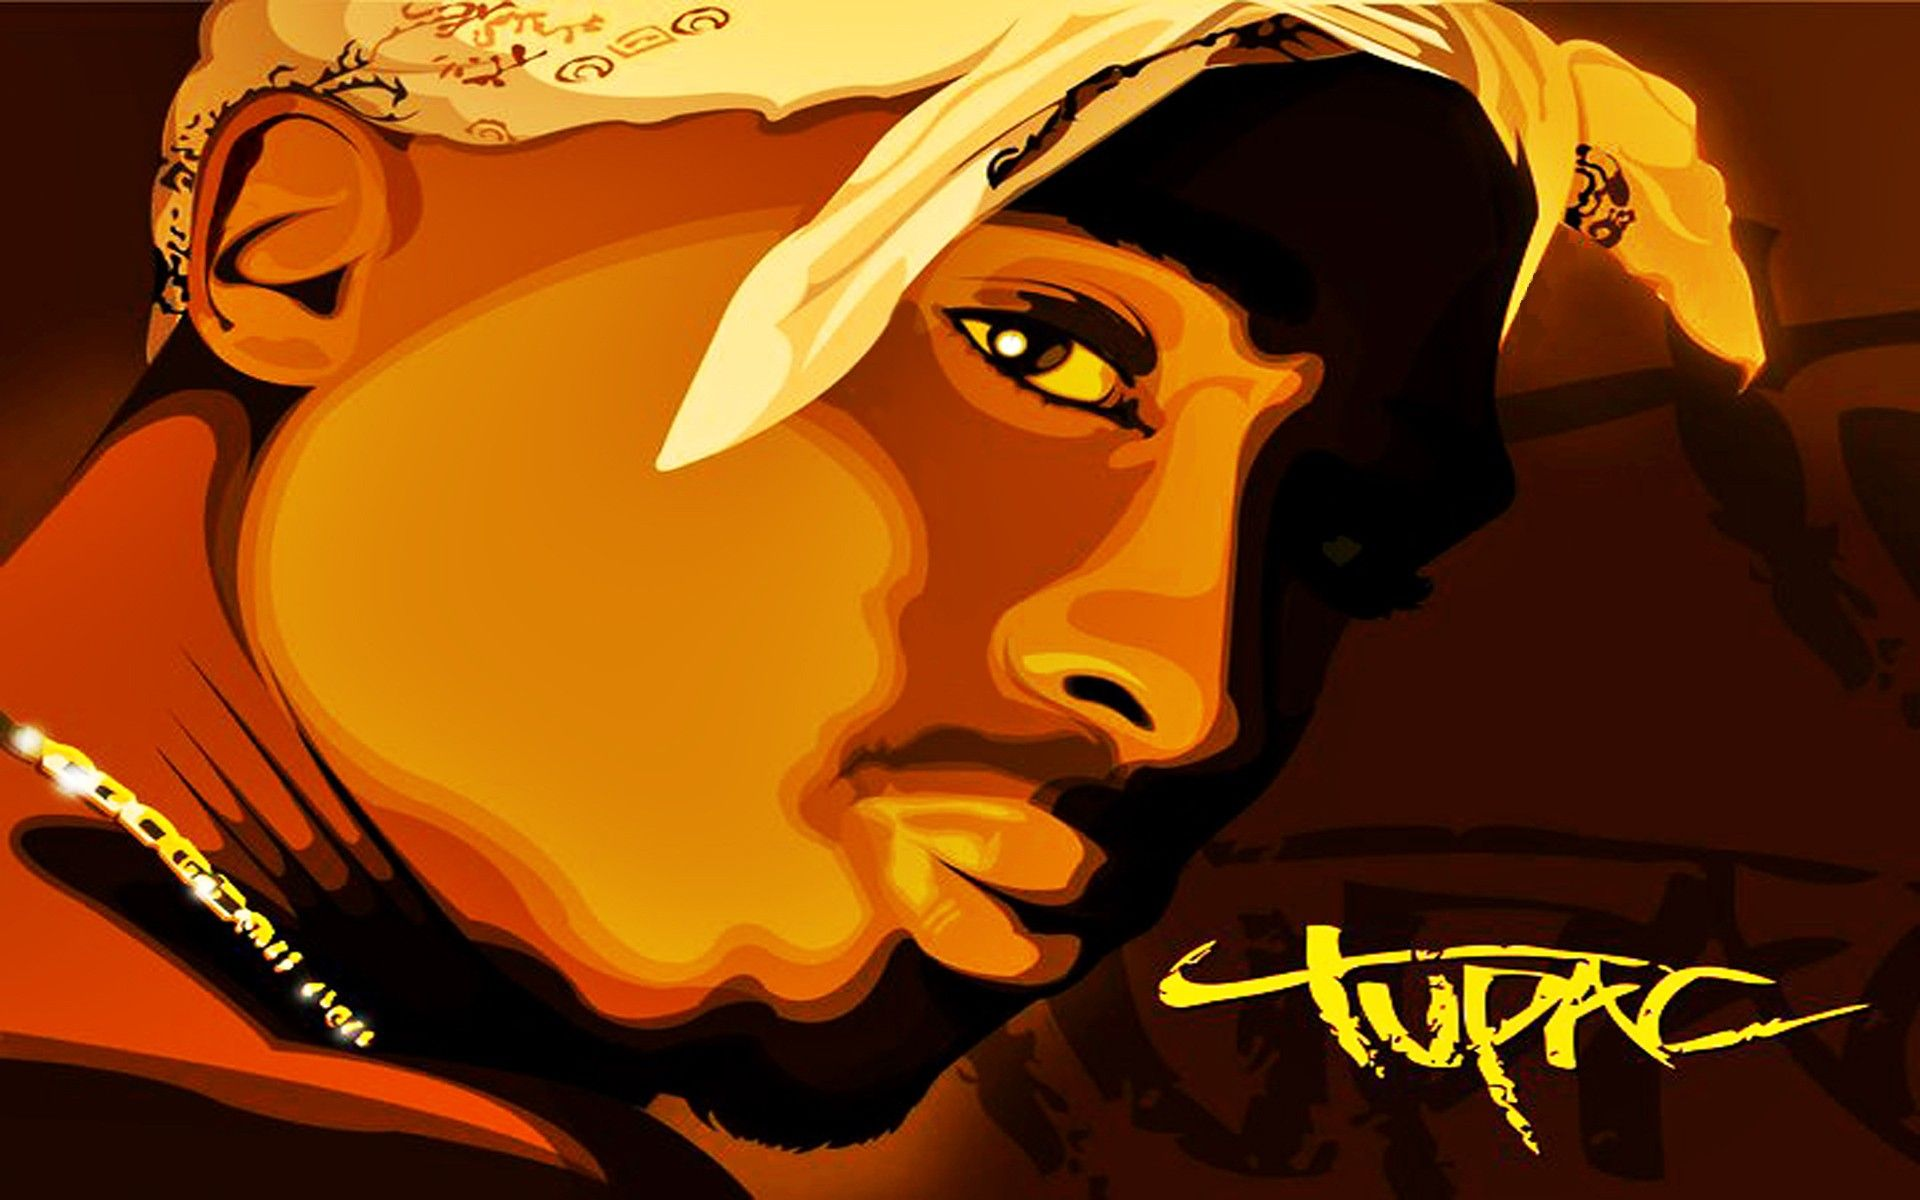 1920x1200 Tupac Shakur Wallpapers, Pictures, Images